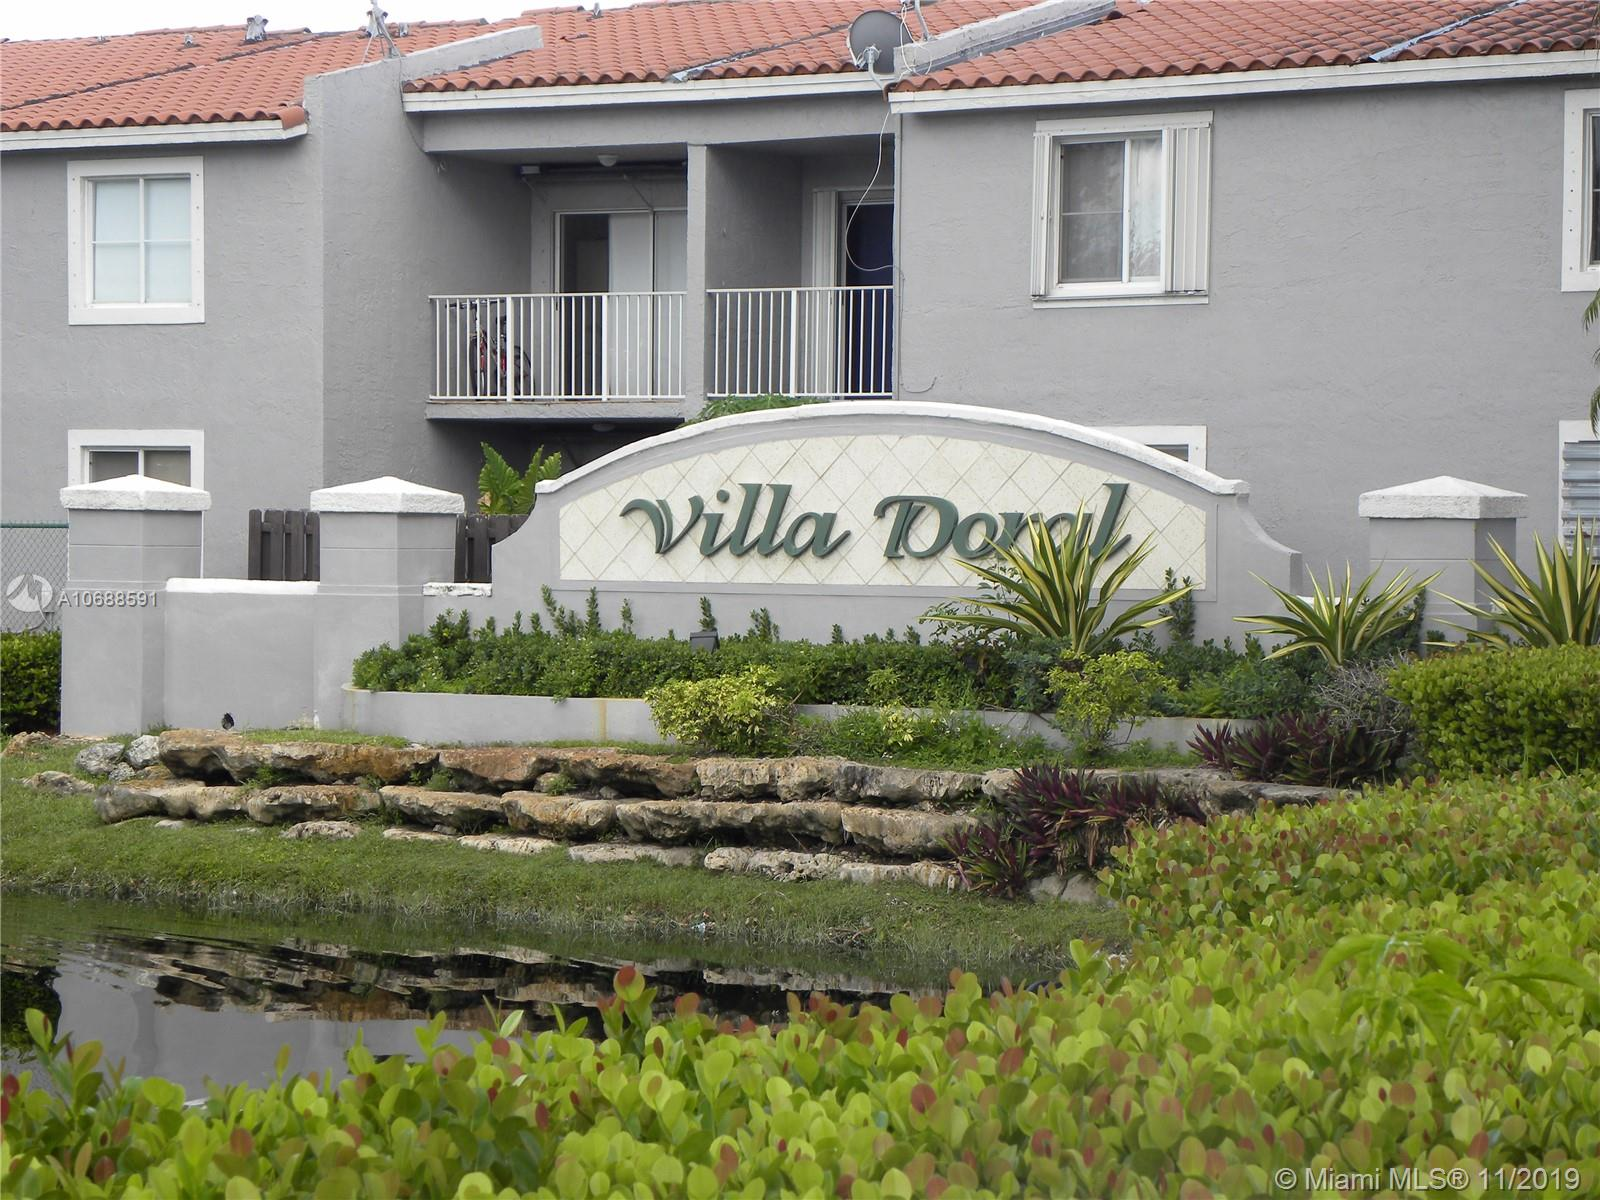 4756 NW 114th Ave #101 For Sale A10688591, FL